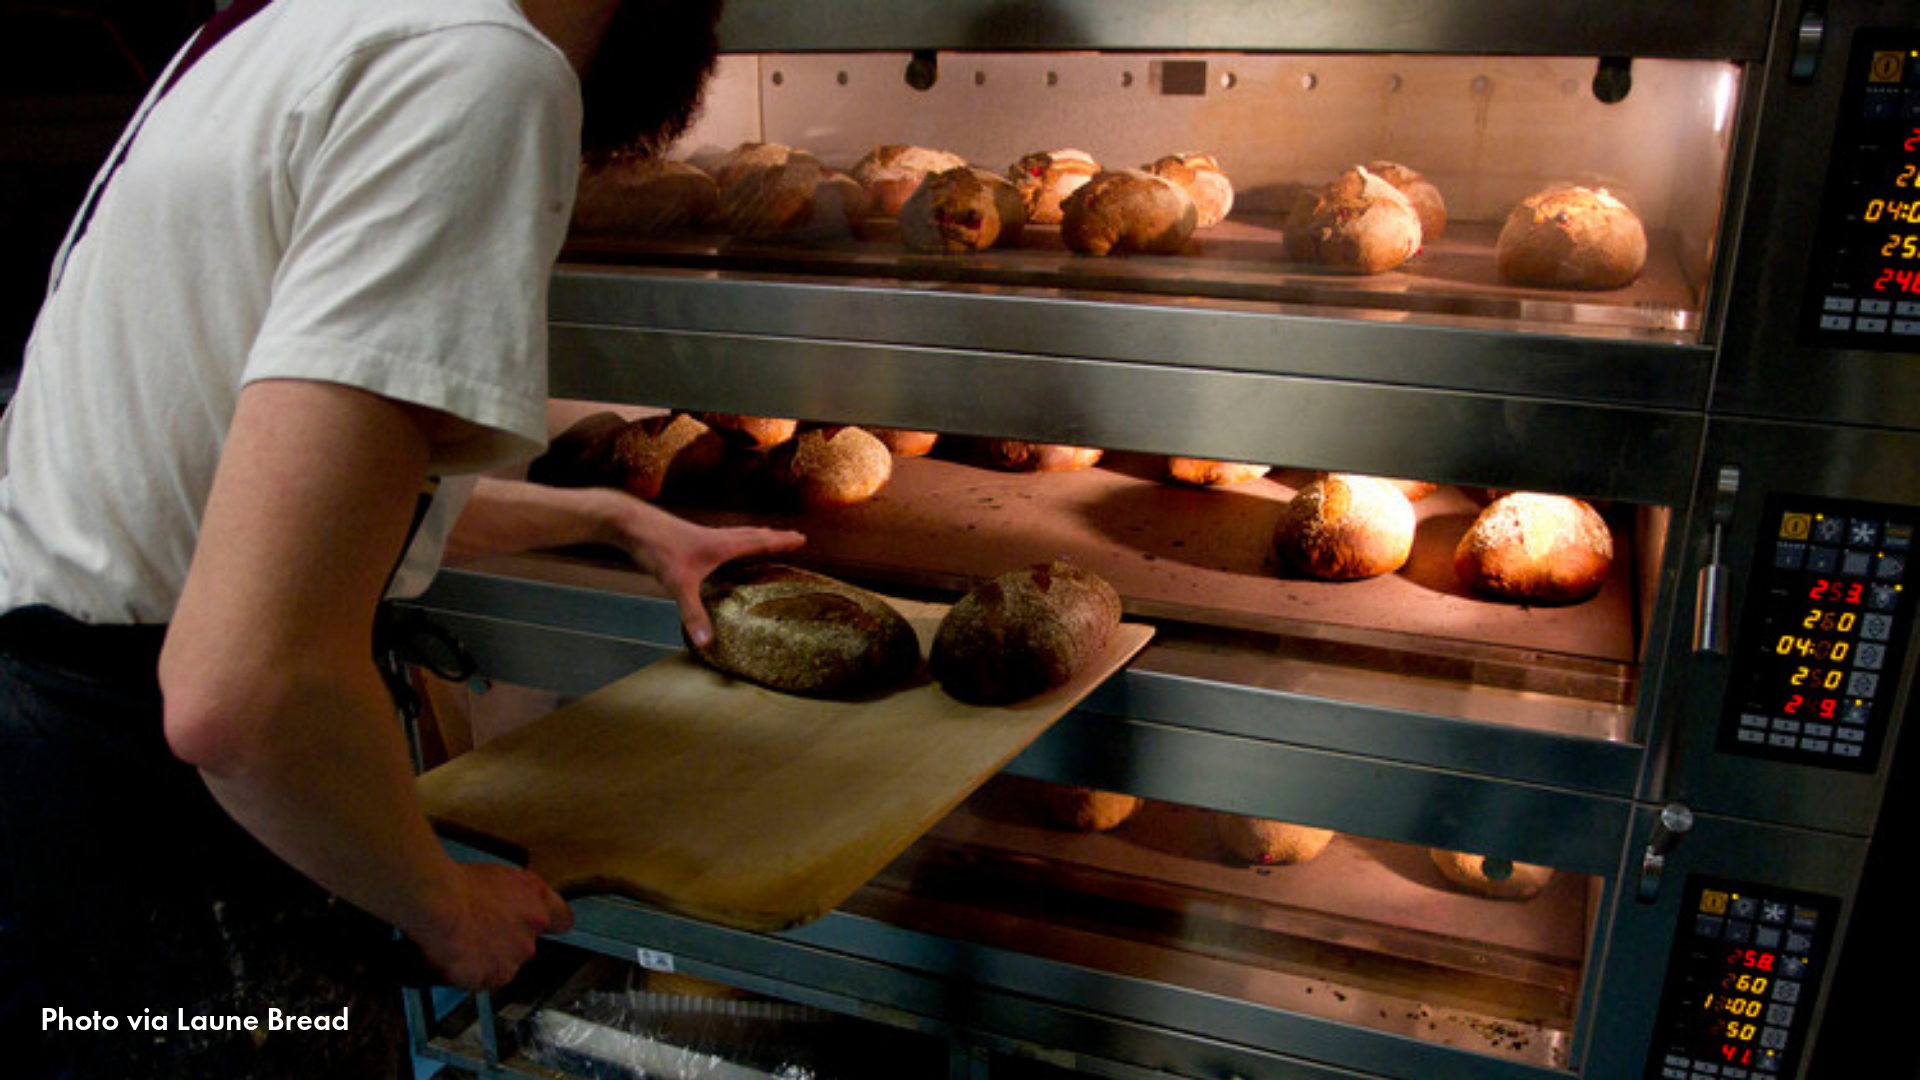 Person baking bread